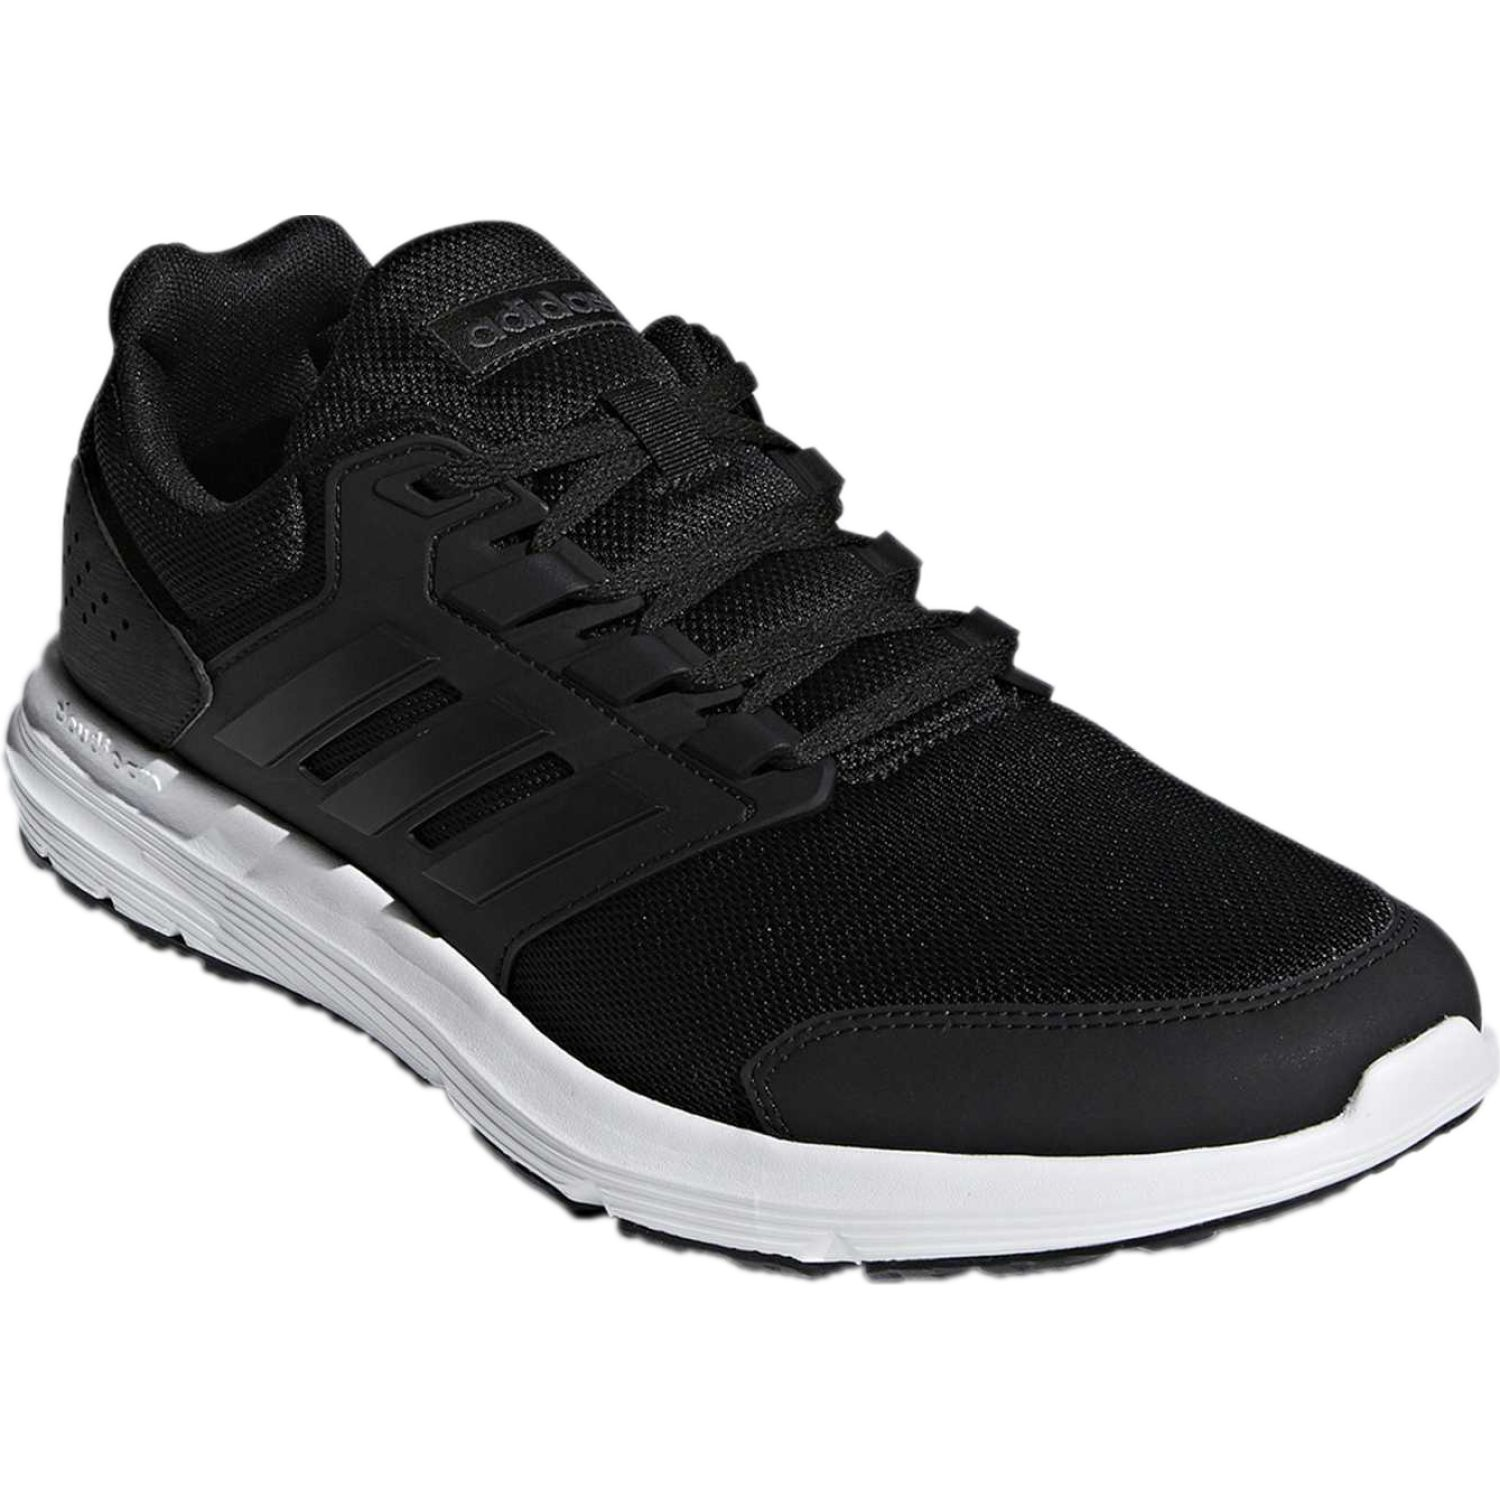 Adidas galaxy 4 Negro / blanco Walking | platanitos.com